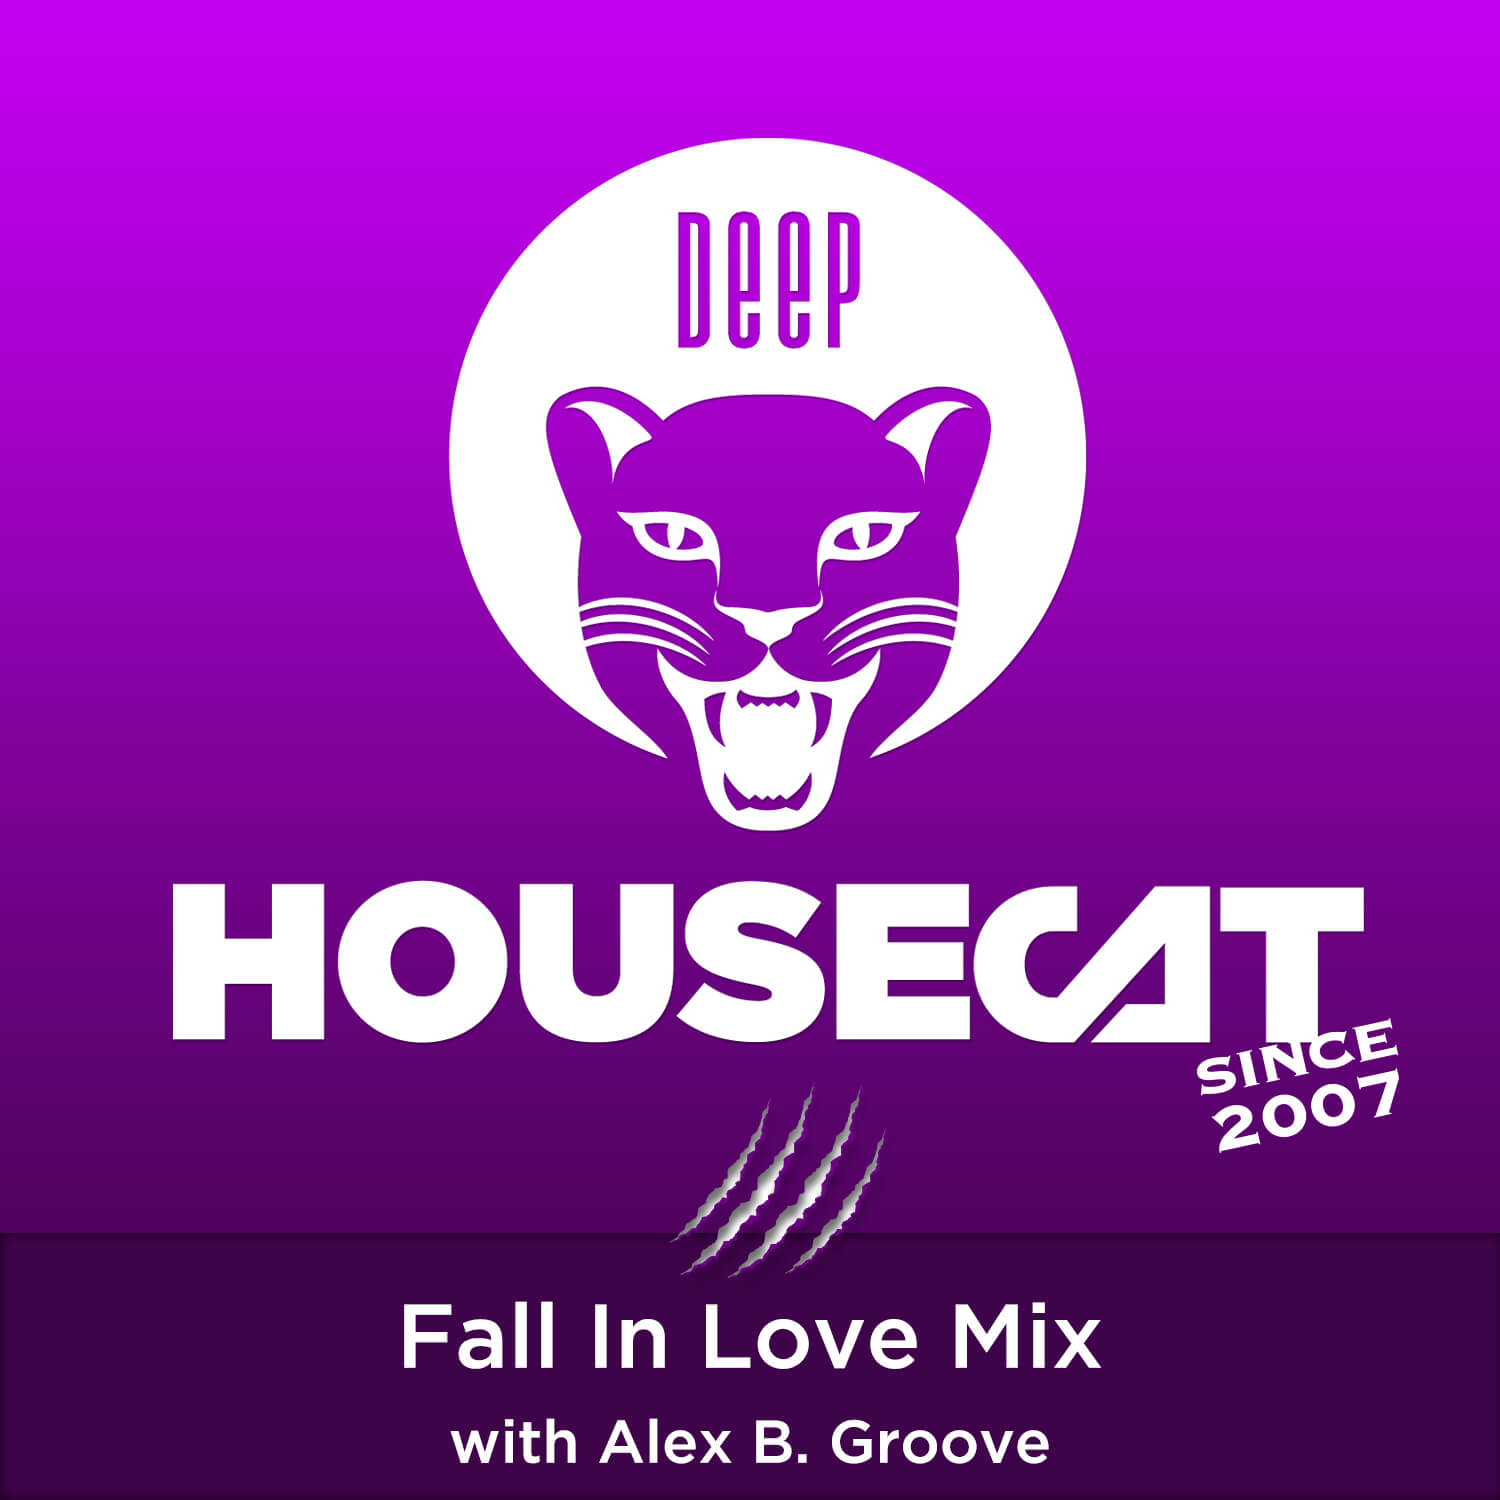 Fall In Love Mix - with Alex B. Groove